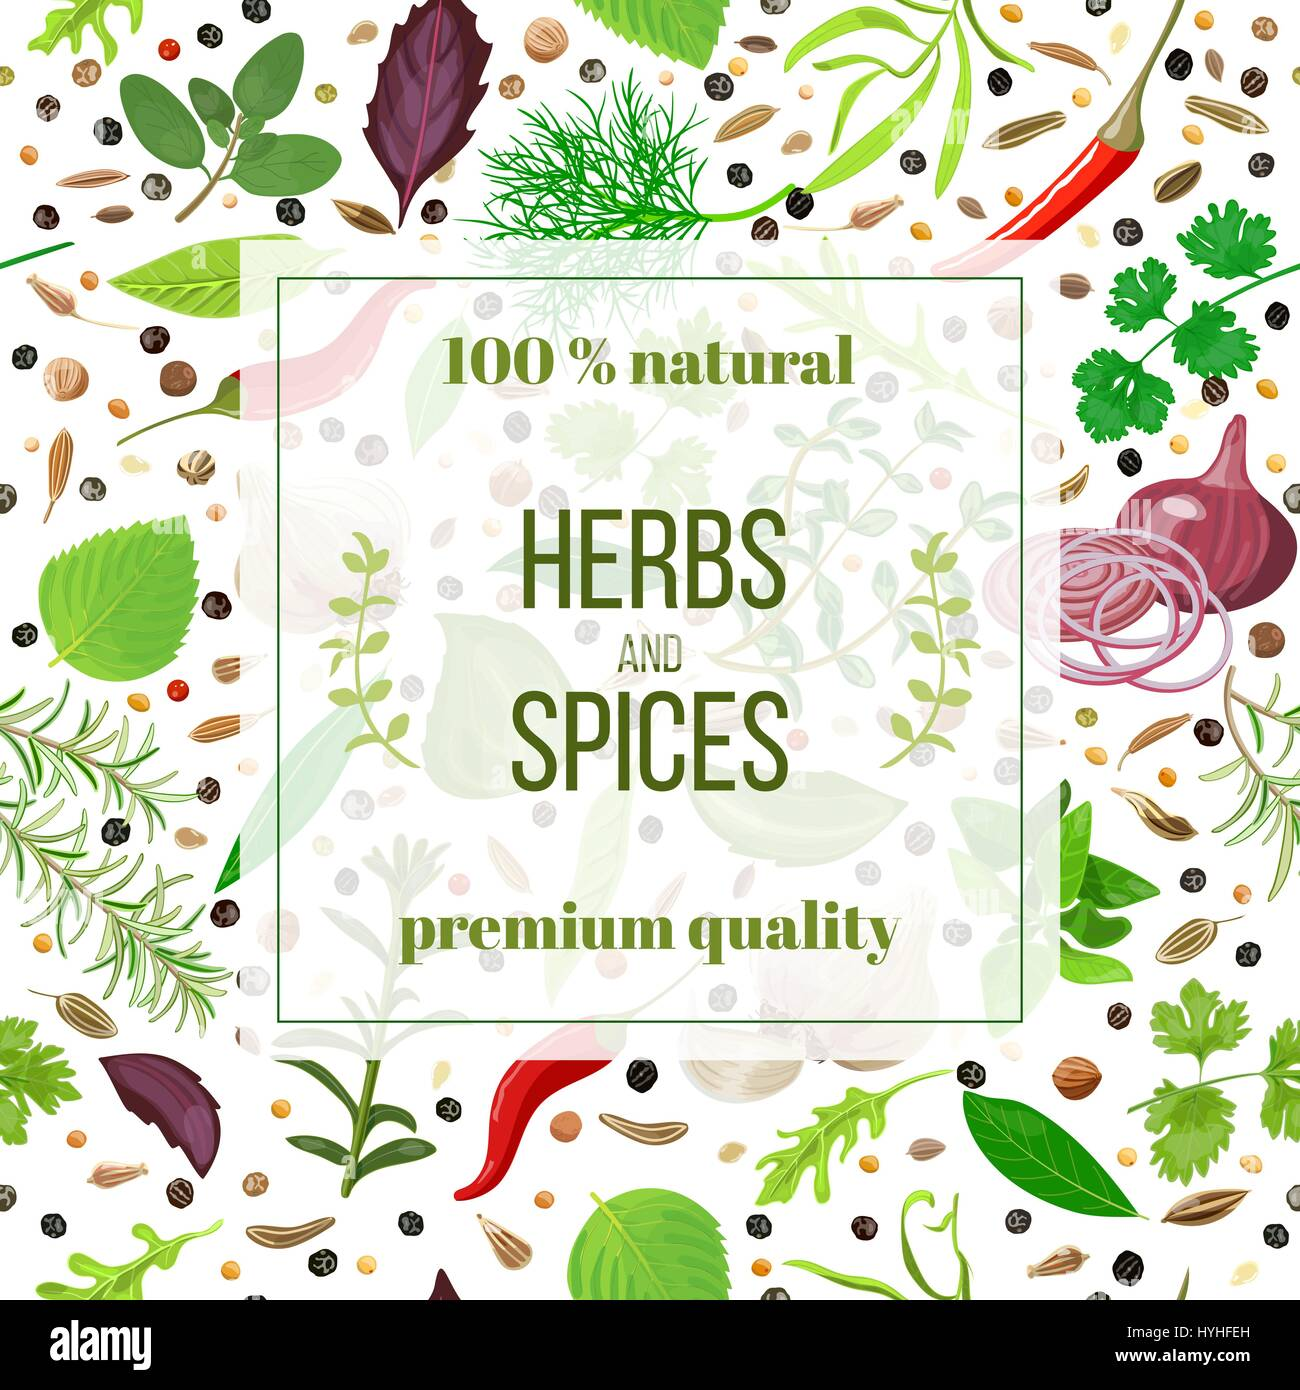 List Of Culinary Herbs Stock Photos & List Of Culinary Herbs